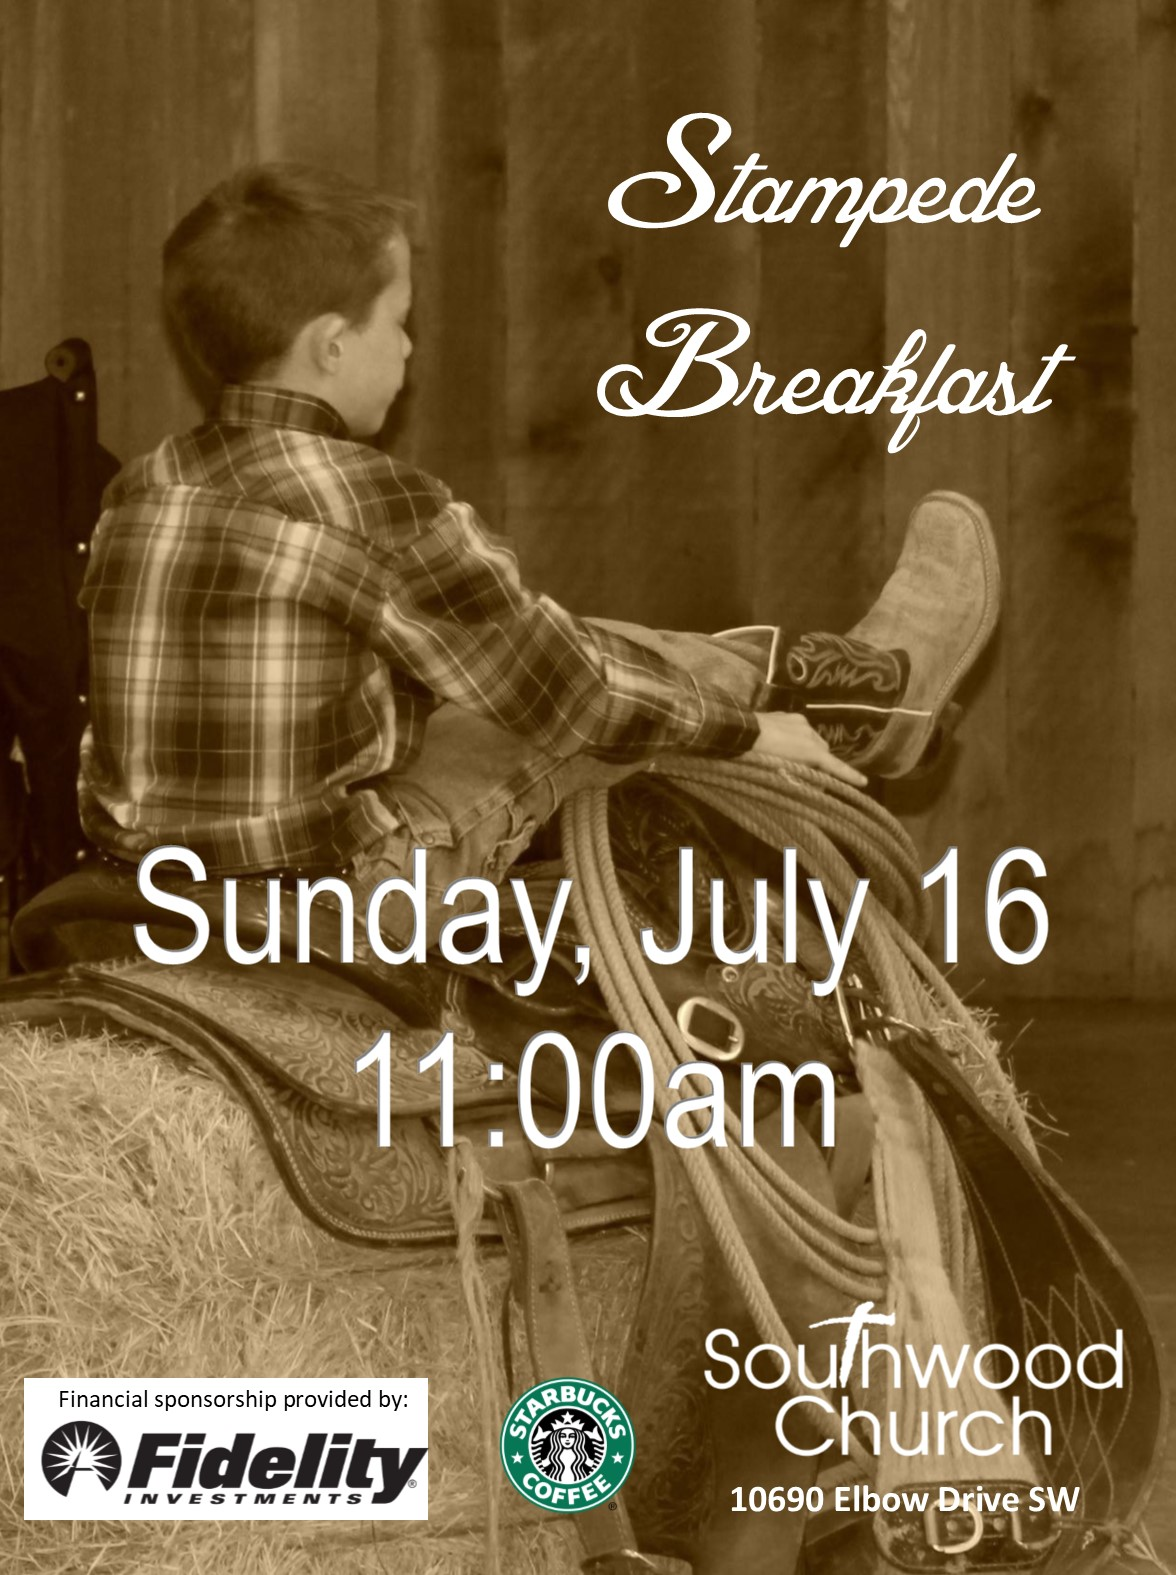 Southwood Church Stampede Breakfast 2017